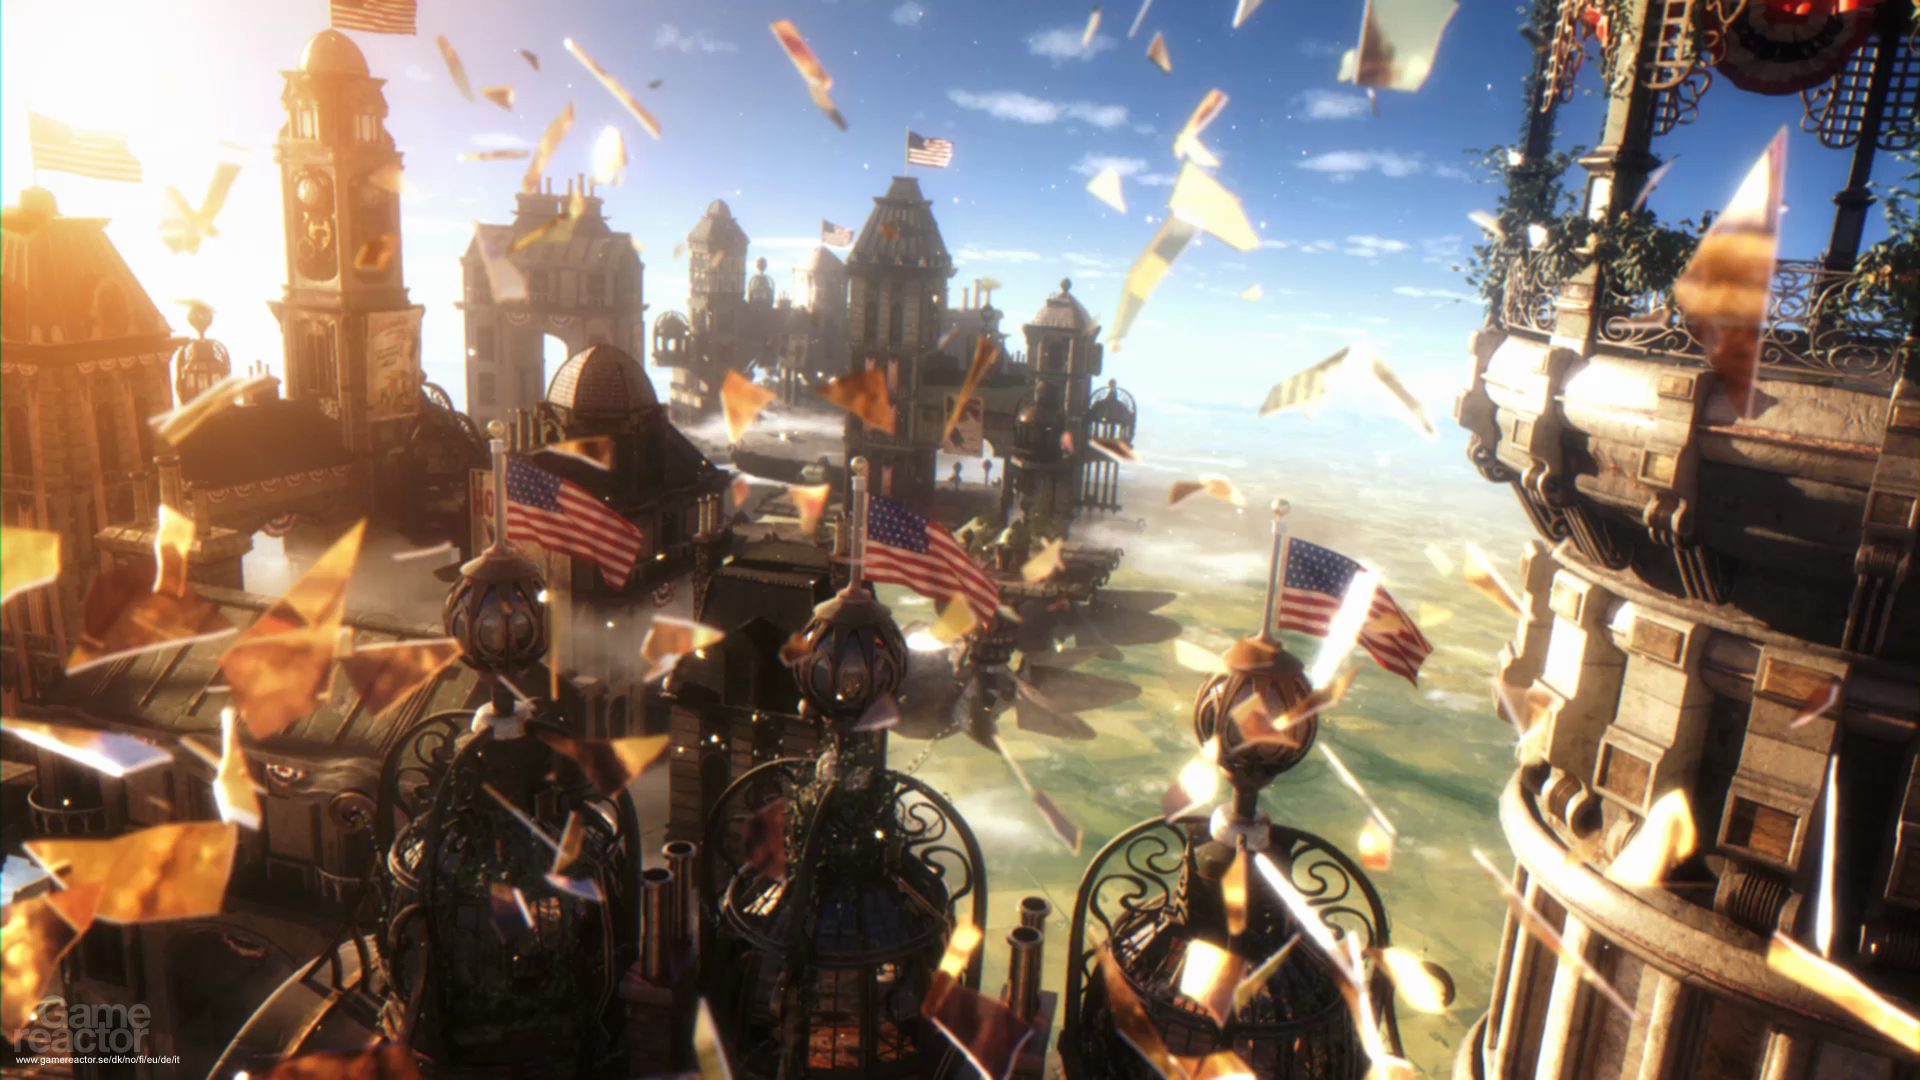 180 Bioshock Infinite HD Wallpapers   Backgrounds - Wallpaper Abyss